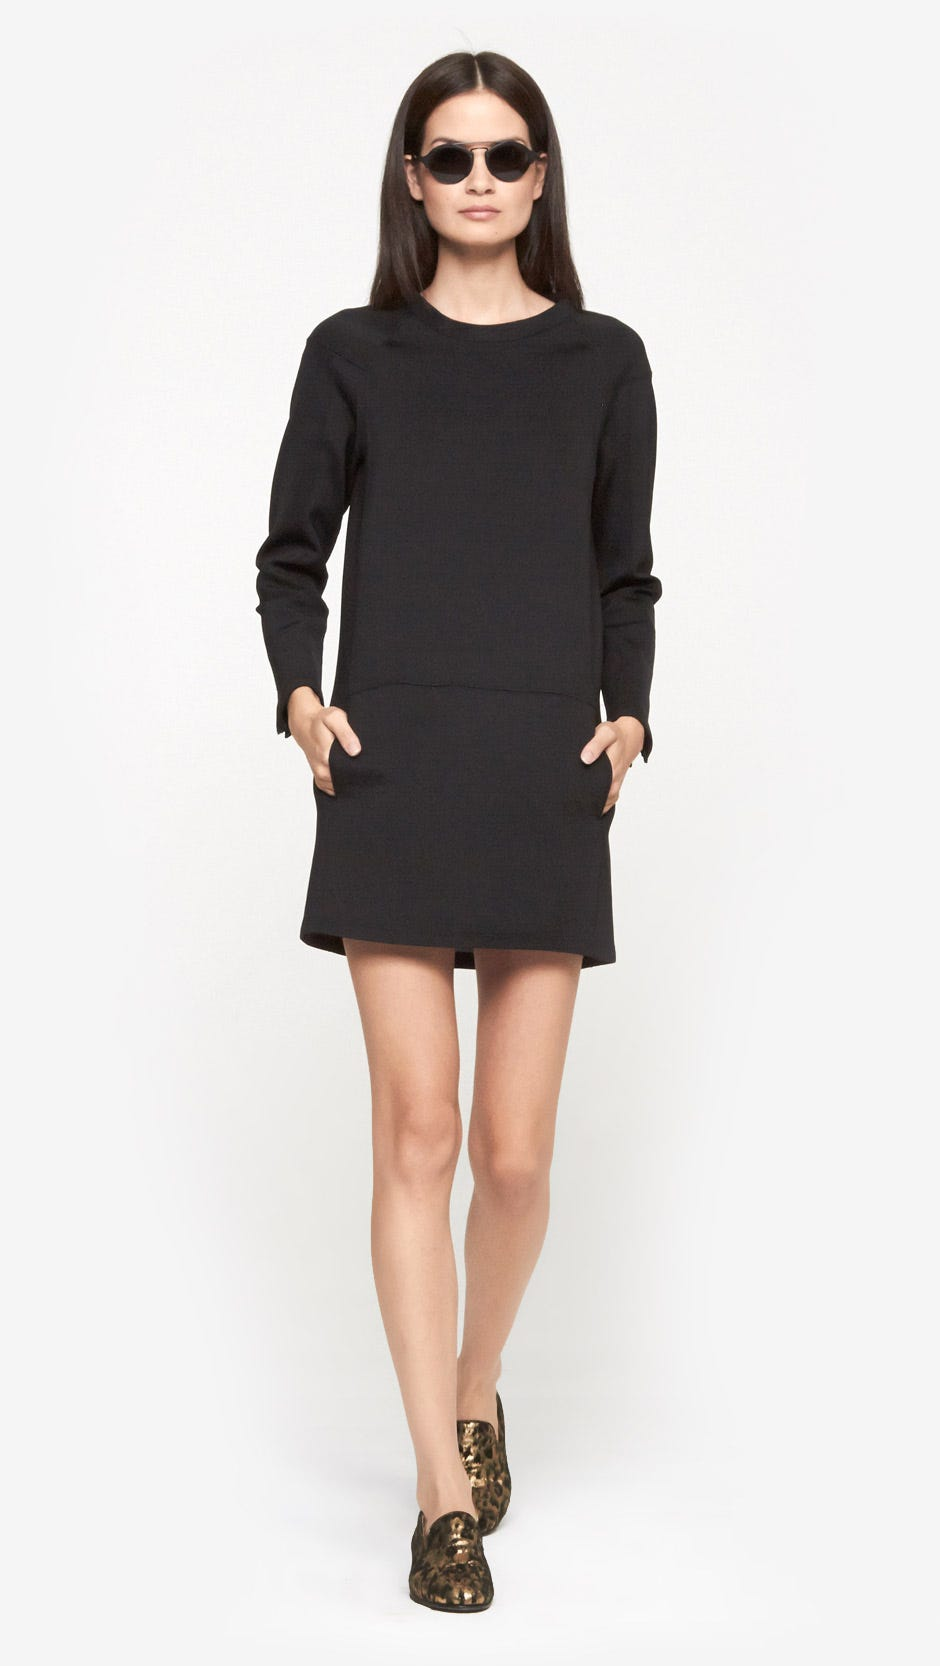 Long-Sleeve Dresses - Winter, Chic, Best, Stylish